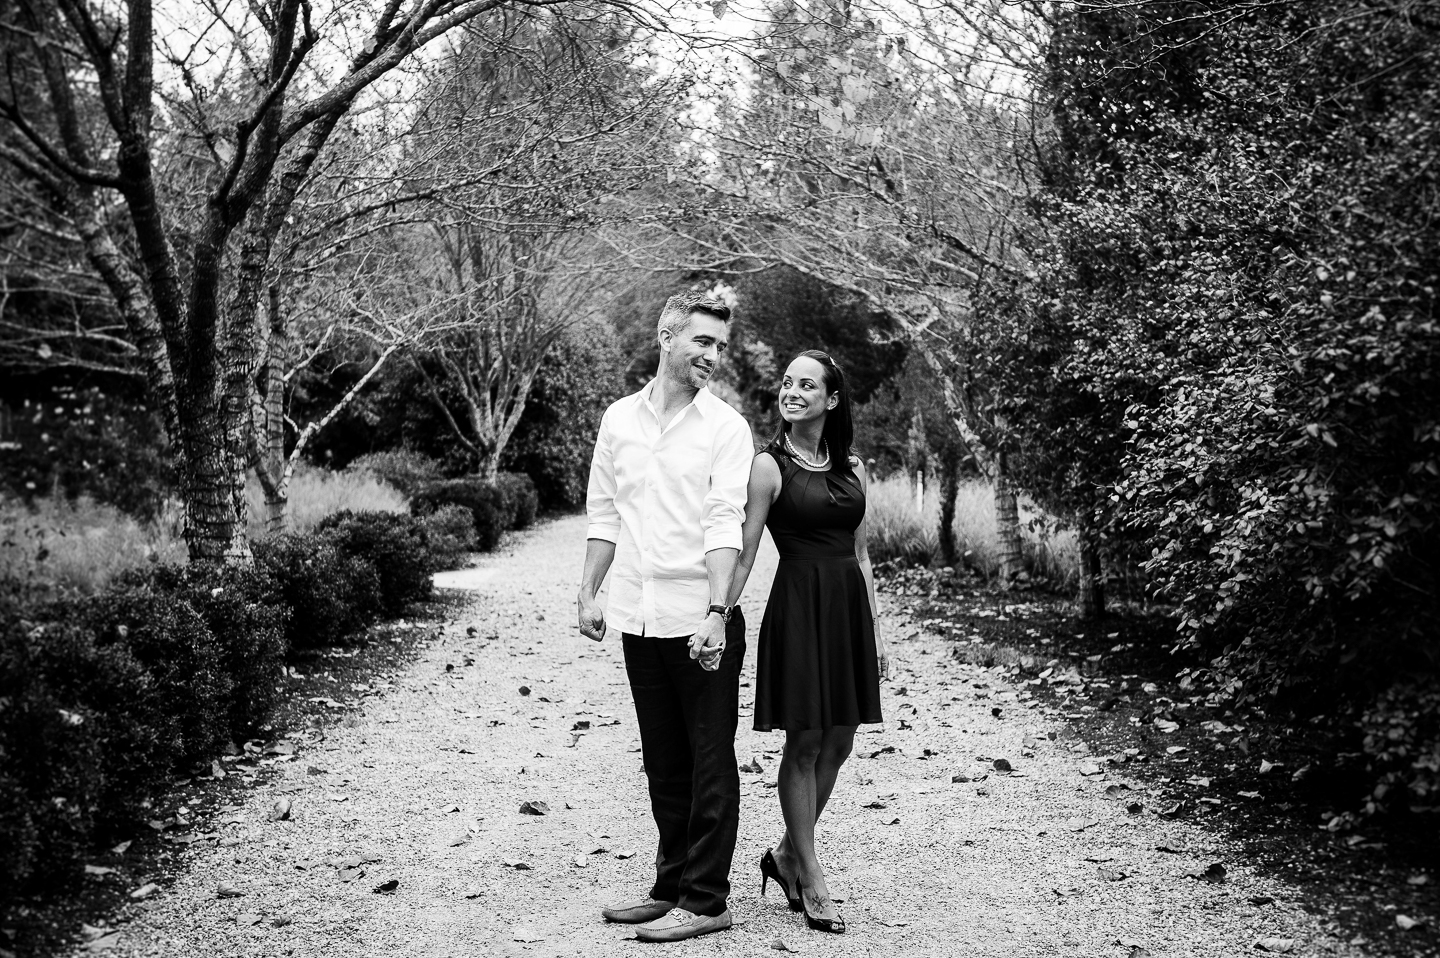 NC Arboretum pathway with engaged couple holding hands